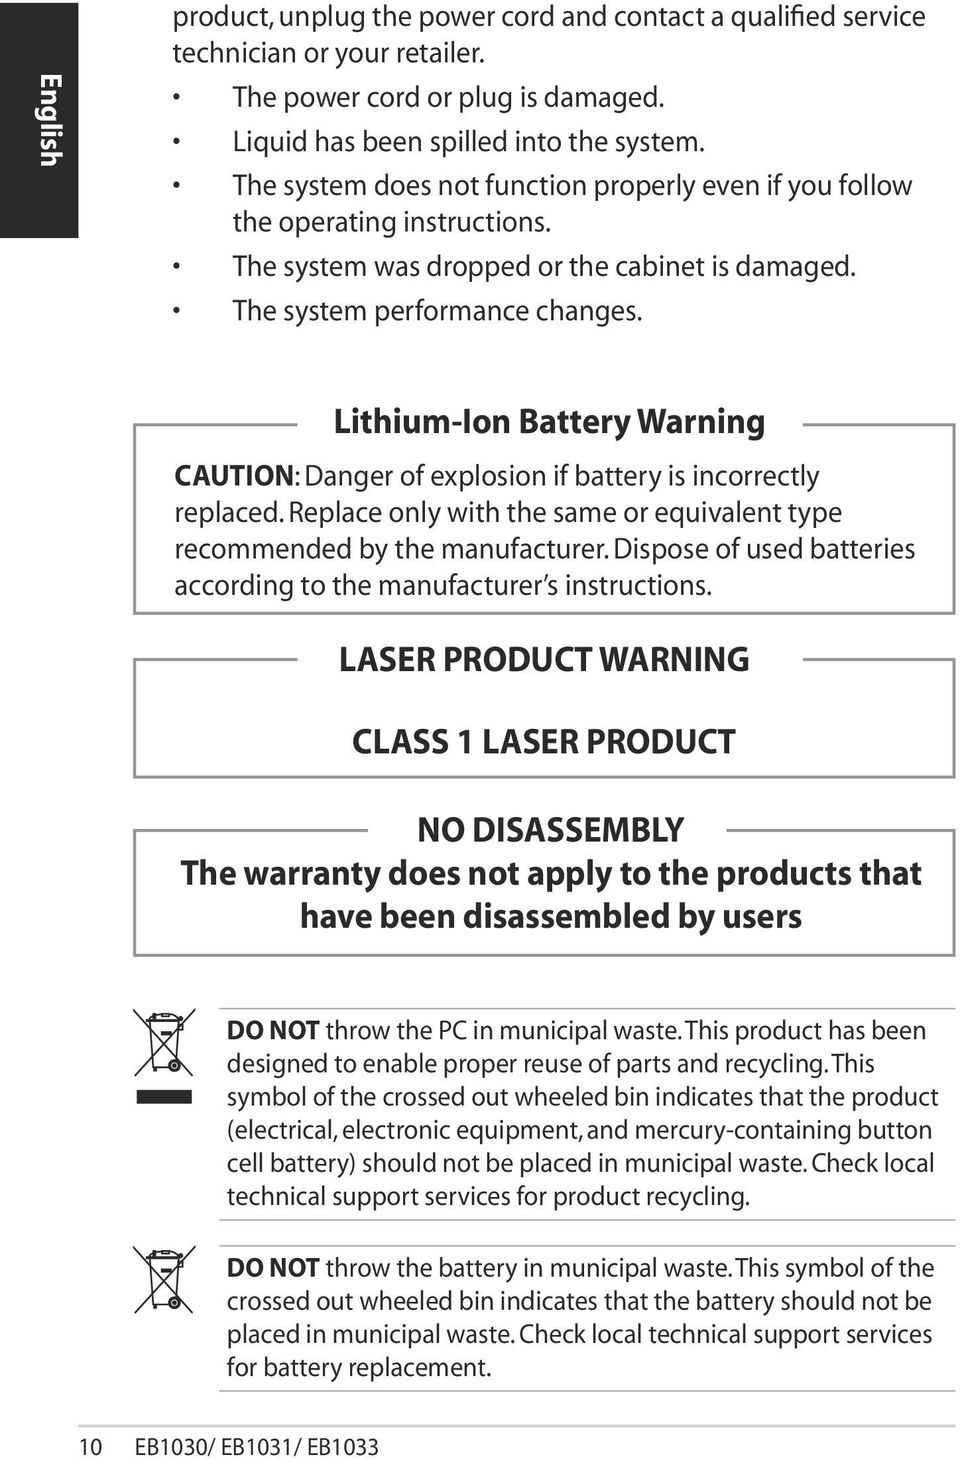 Lithium-Ion Battery Warning CAUTION: Danger of explosion if battery is incorrectly replaced. Replace only with the same or equivalent type recommended by the manufacturer.